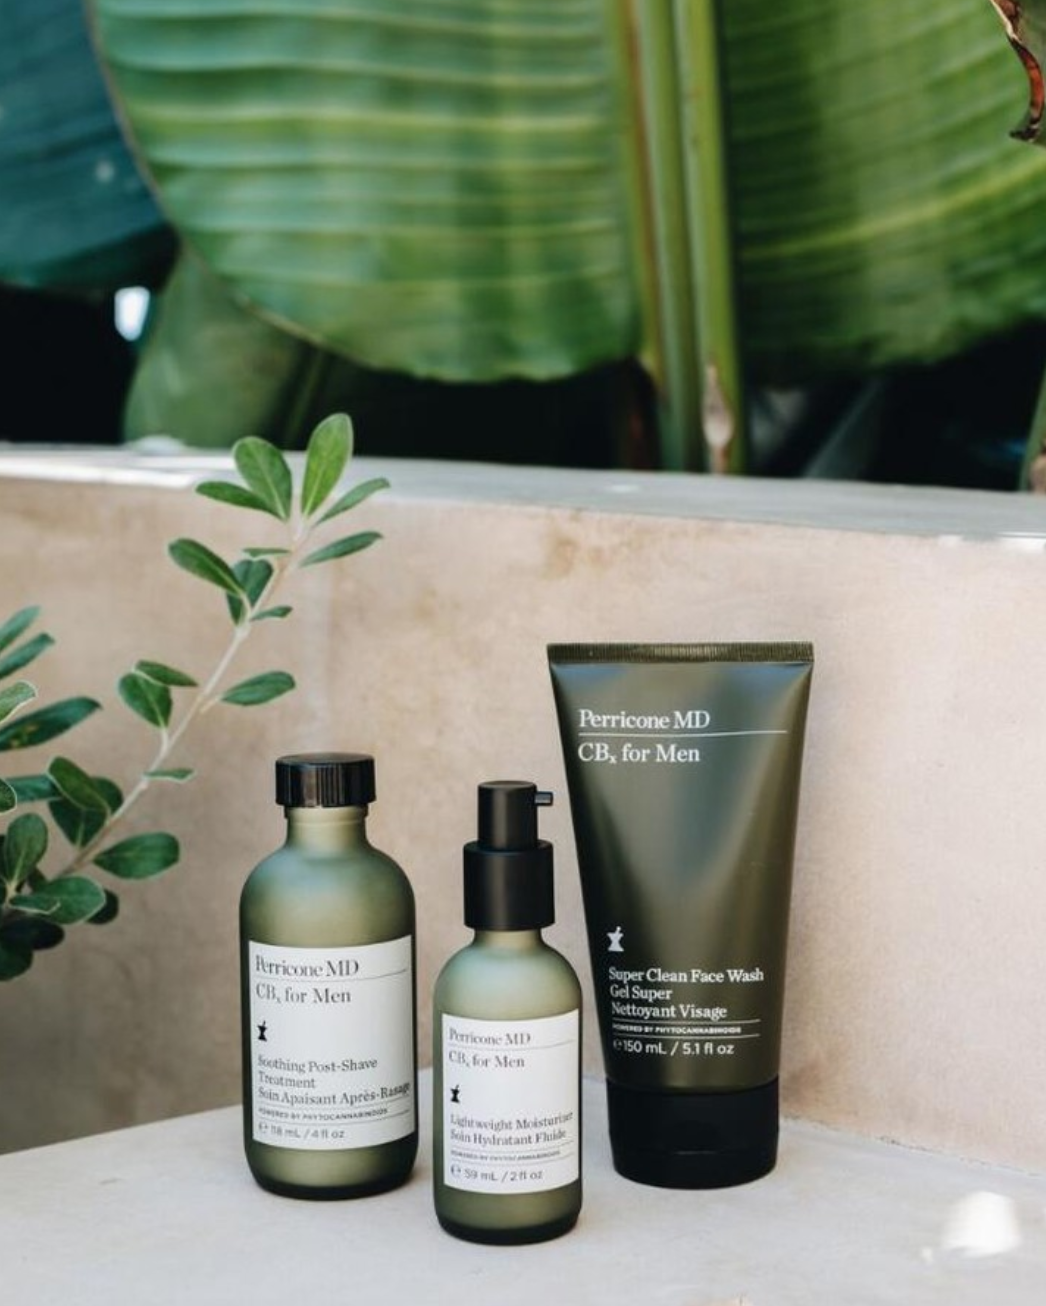 """PerriconeMD: CBx For Men - Here's something unexpected: luxury skincare line Perricone MD using hemp — in their men's product line! CBx For Men is a collection of facial wash, moisturizer, and aftershave using phytocannabinoids to treat """"oil-prone"""" skin. And of course, the fragrance is """"woodsy green with a subtle top note of fresh hemp."""""""